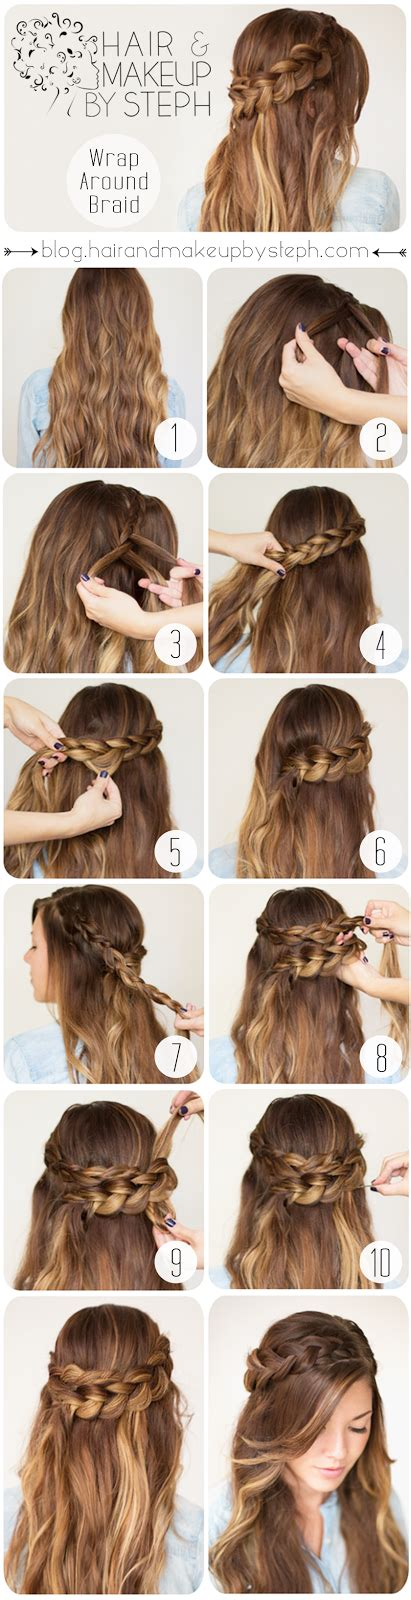 cute hairstyles and how to do it 20 cute and easy hairstyle ideas and tutorials style